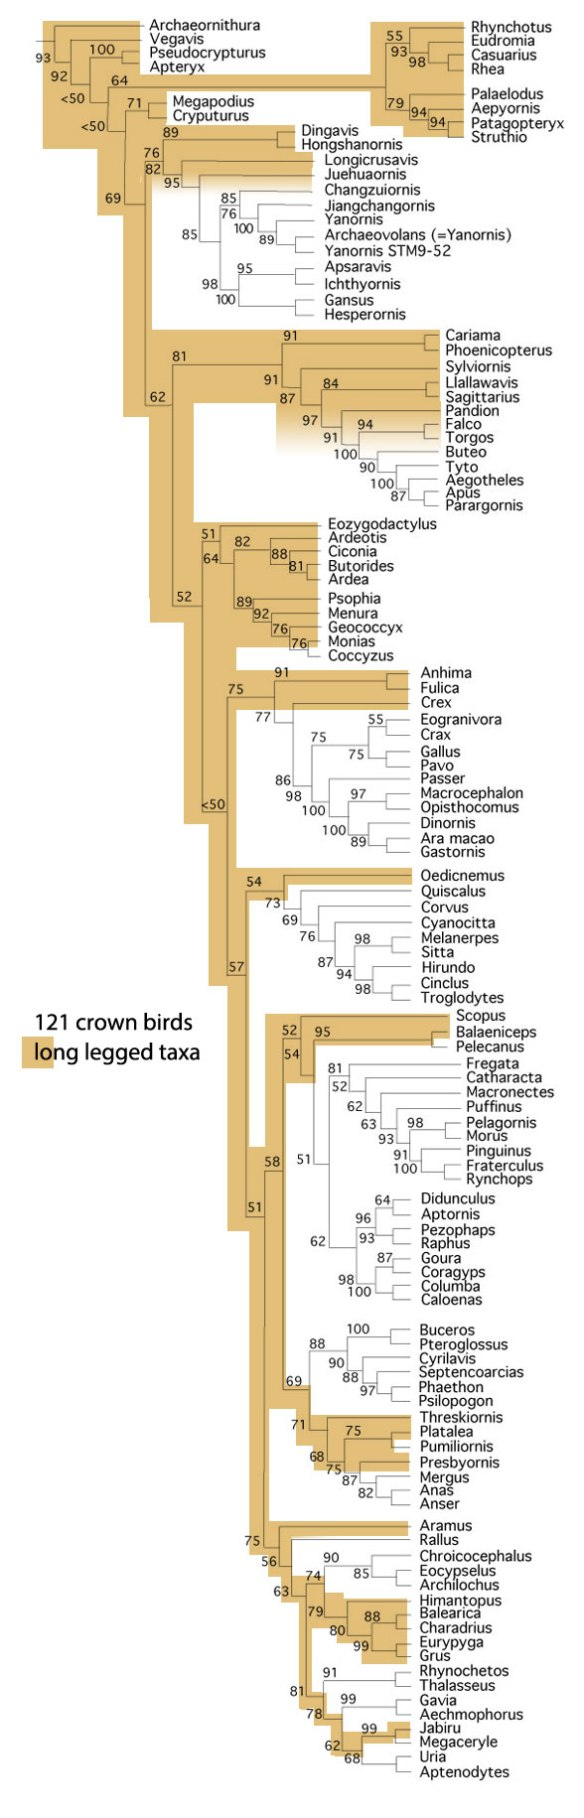 Figure 4. Subset of the LRT focusing on the crown bird clade. Brown taxa are all long-legged. Neotony produces the smaller, shorter-legged, arboreal taxa.